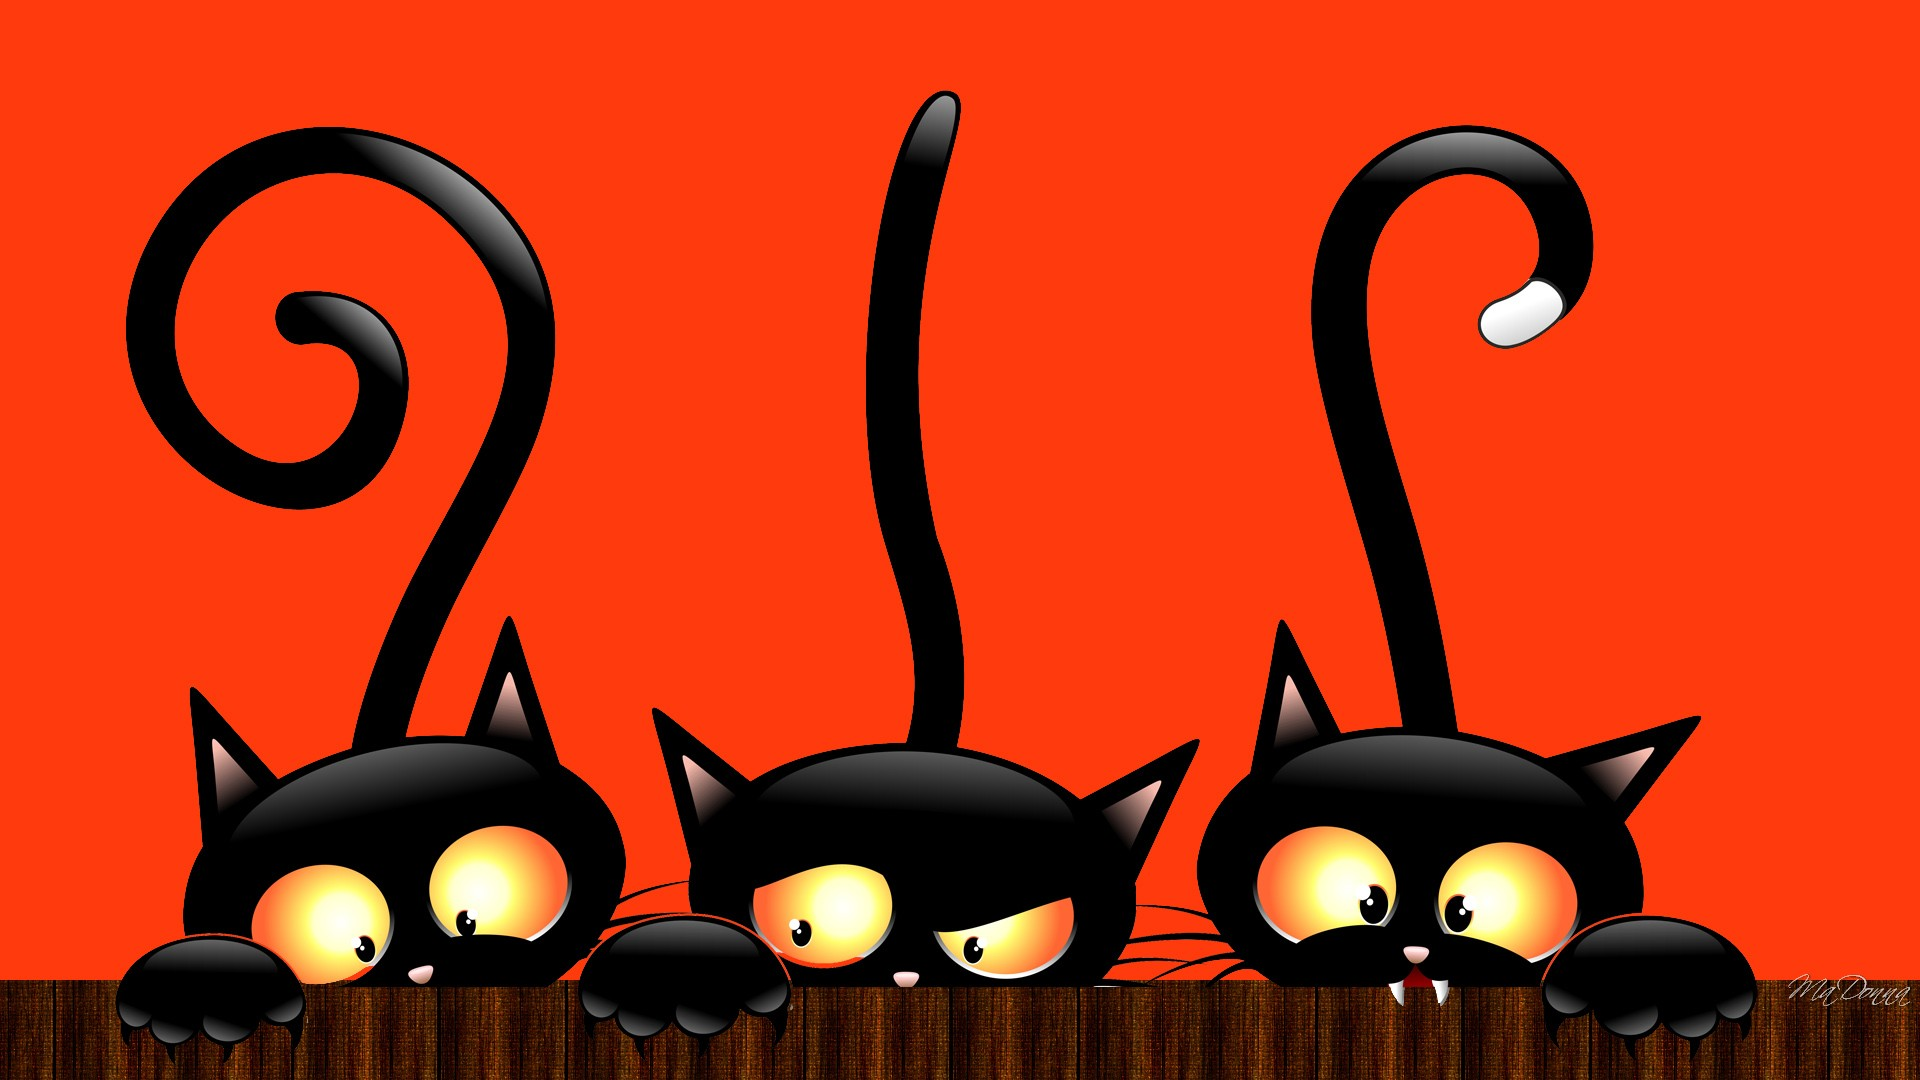 Halloween Backgrounds Free   1920x1080